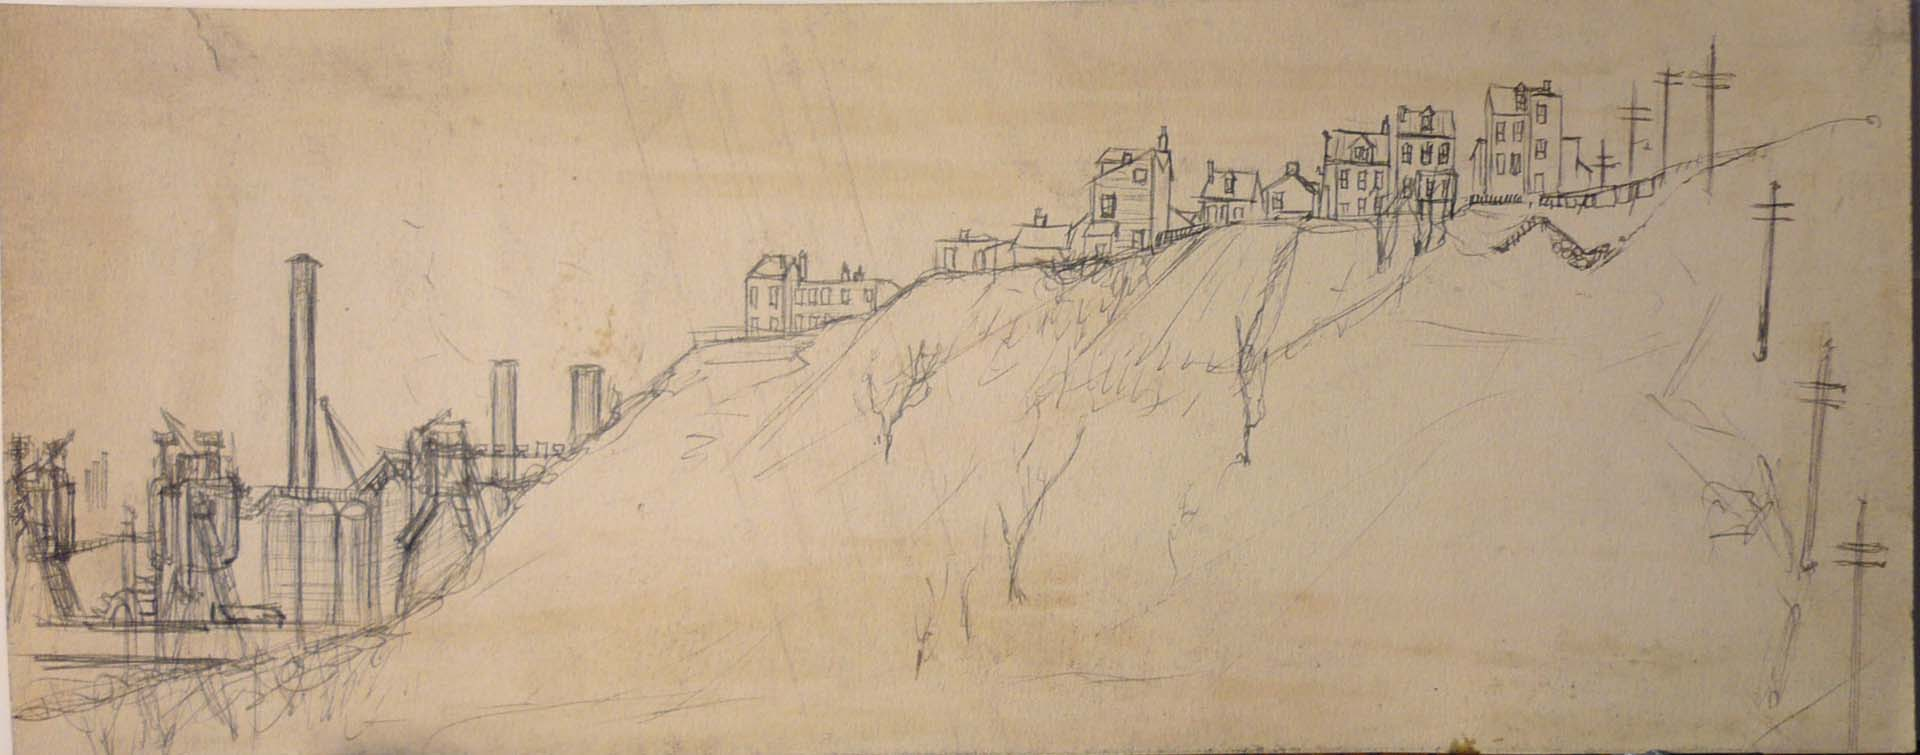 1949 Untitled (Pittsburgh Landscape) Pen on Paper 5.375 x 13.625